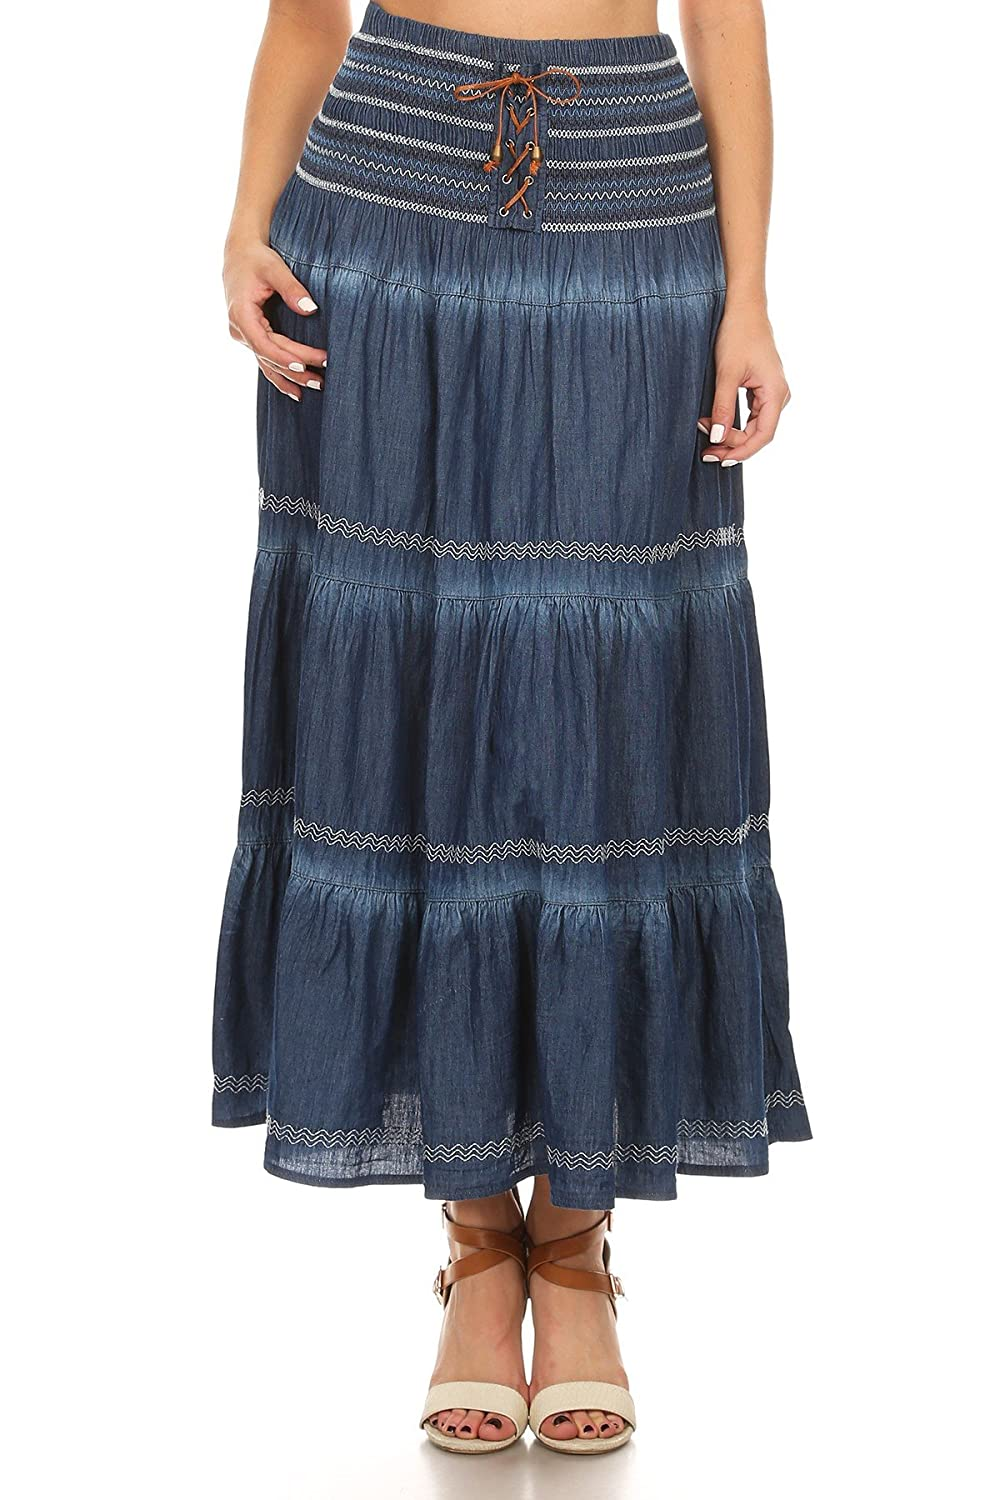 7ddfd7da6d Fit and Flare Tiered Layers Denim Skirt or Midi Dress with Corset Like  Lacing in Washed Blue One Size at Amazon Women s Clothing store